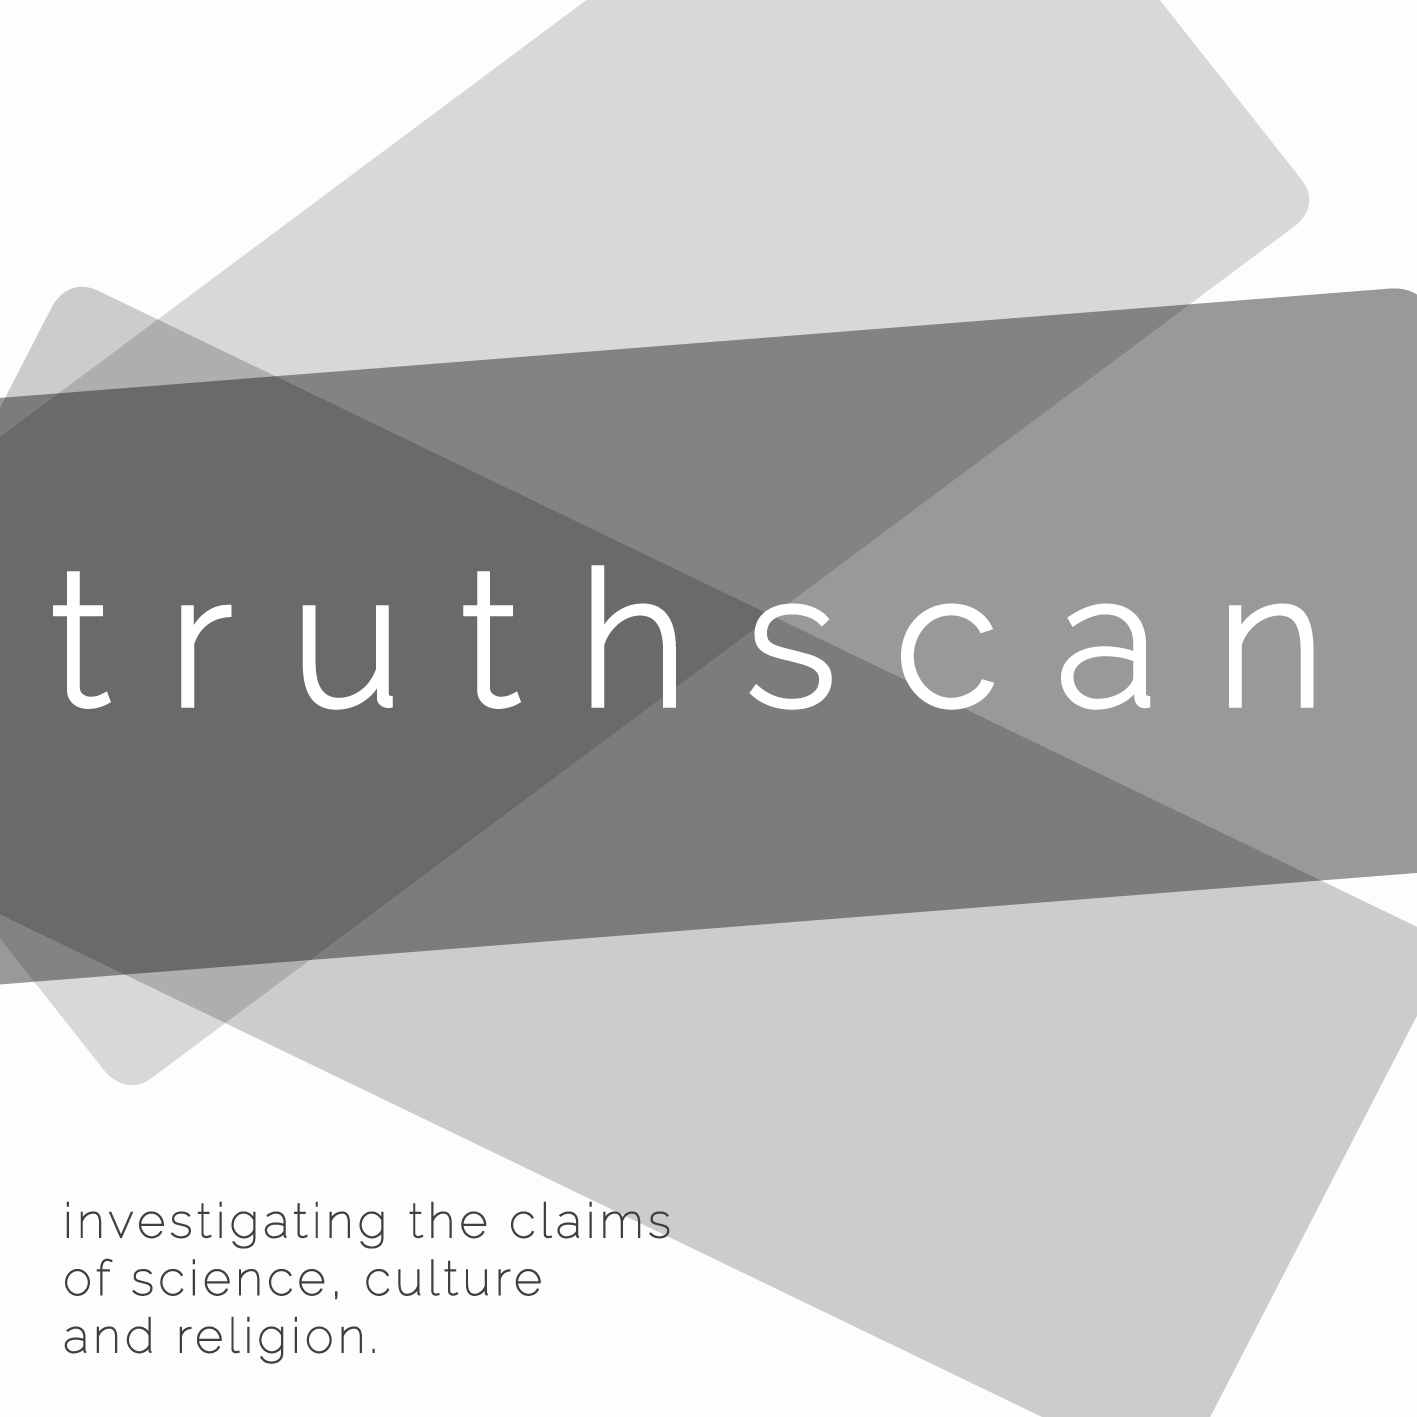 truthscan